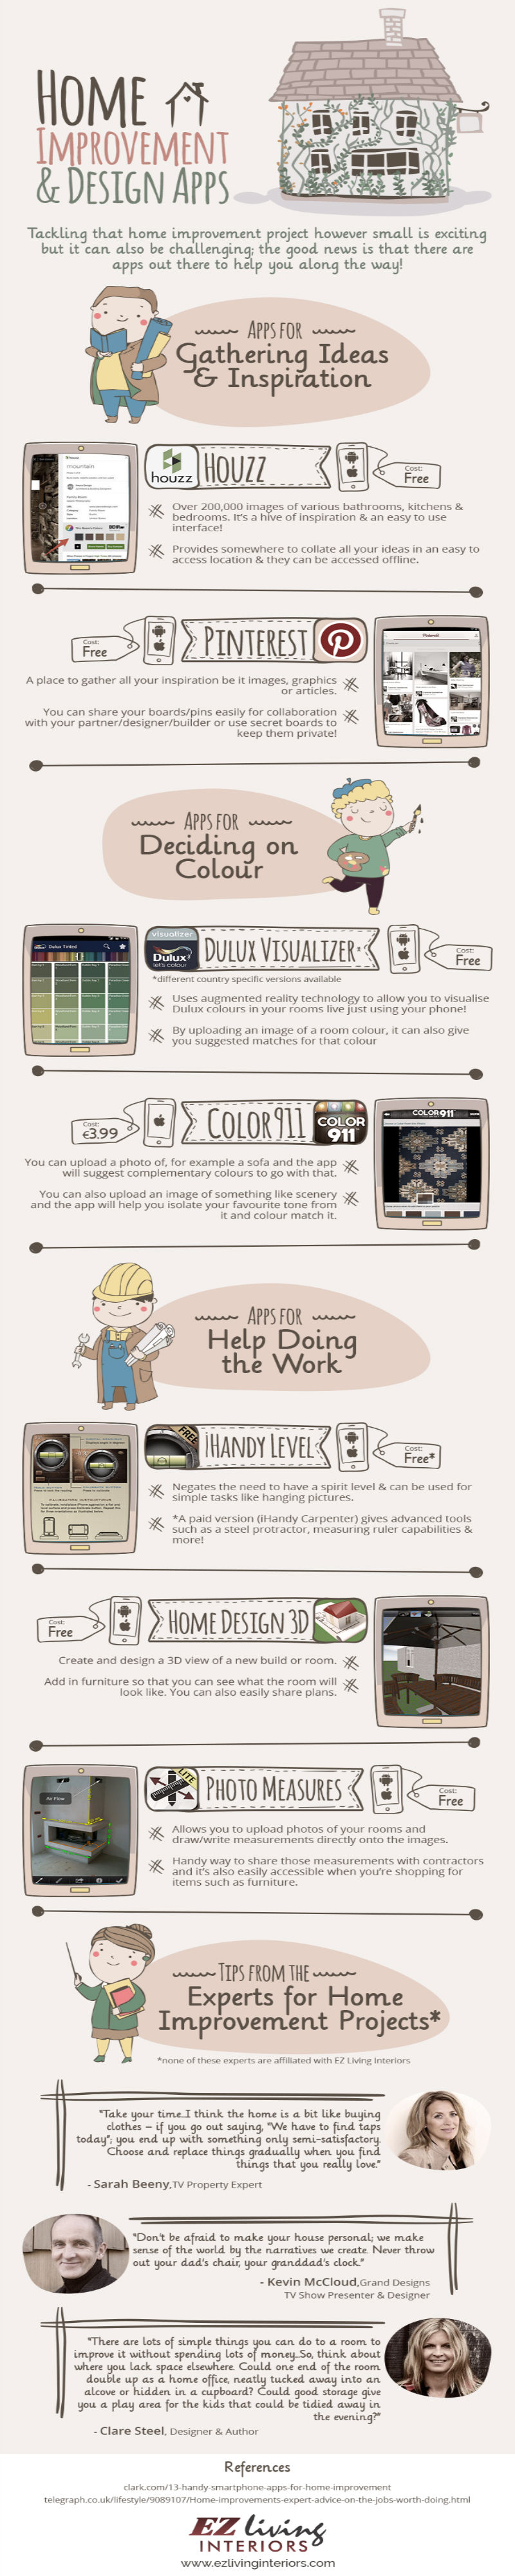 Apps for home improvement infographic irish tech news for Apps for home remodeling